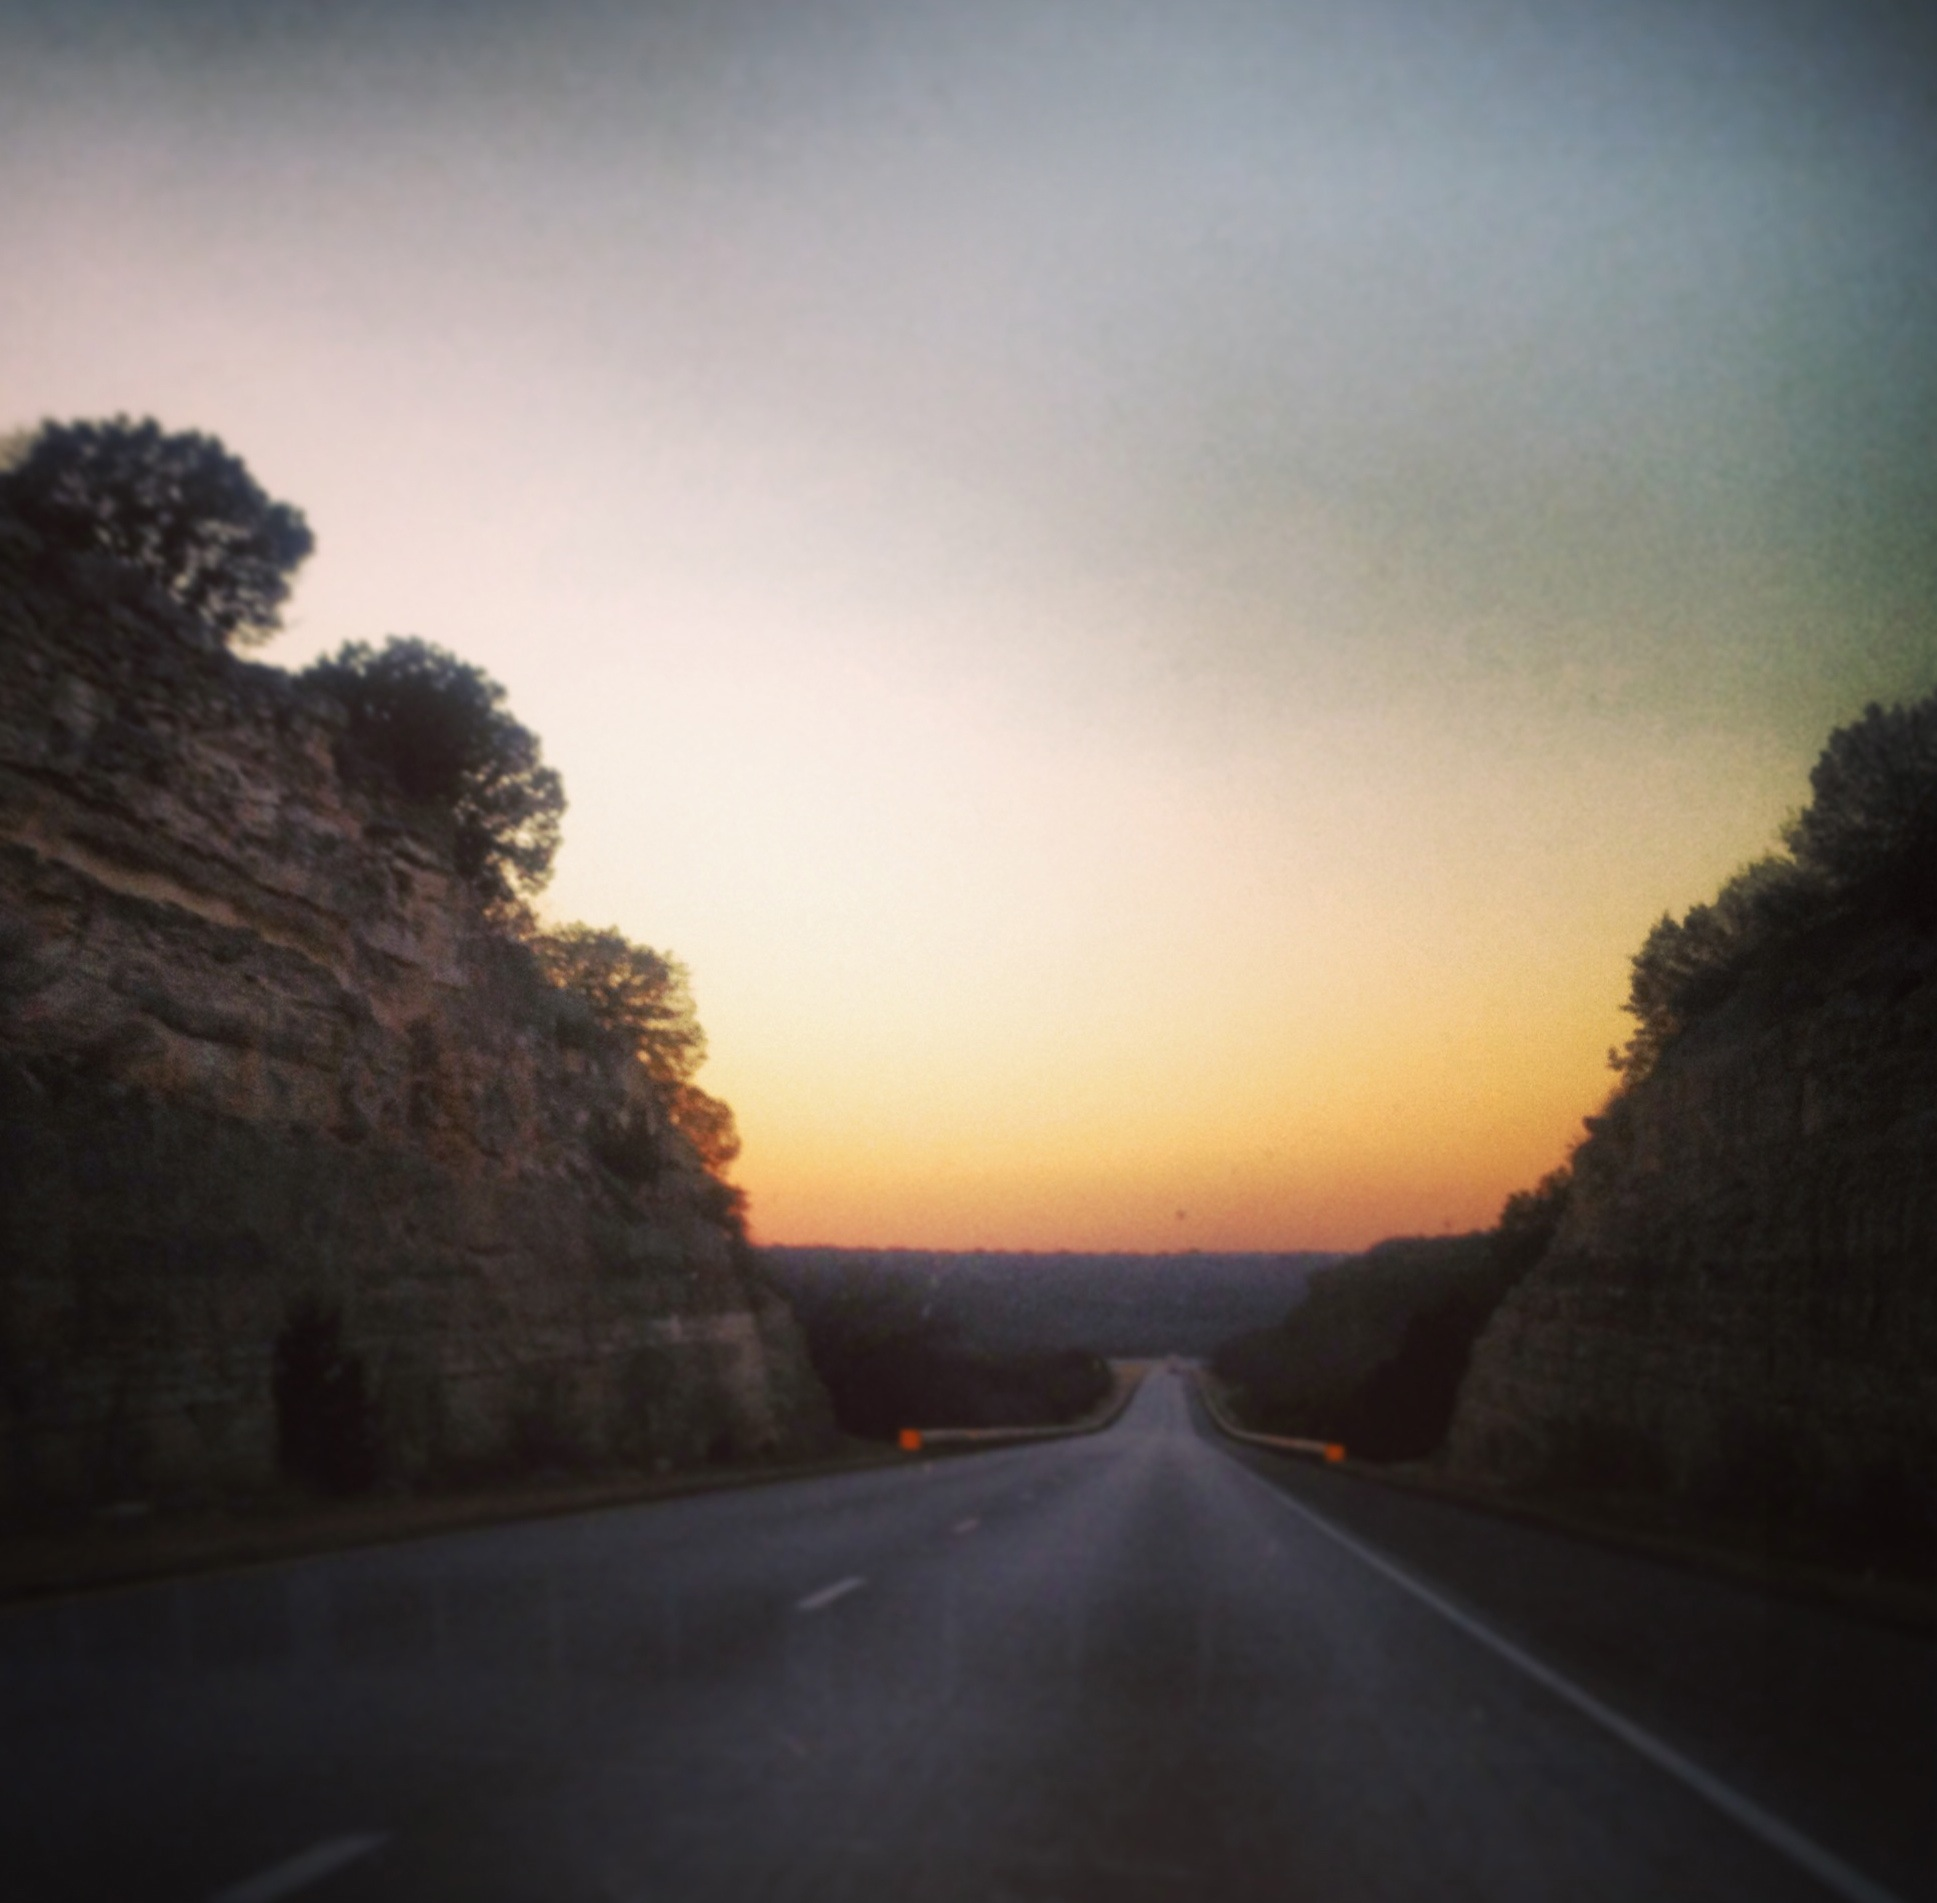 The picturesque views across Texas don't hurt.